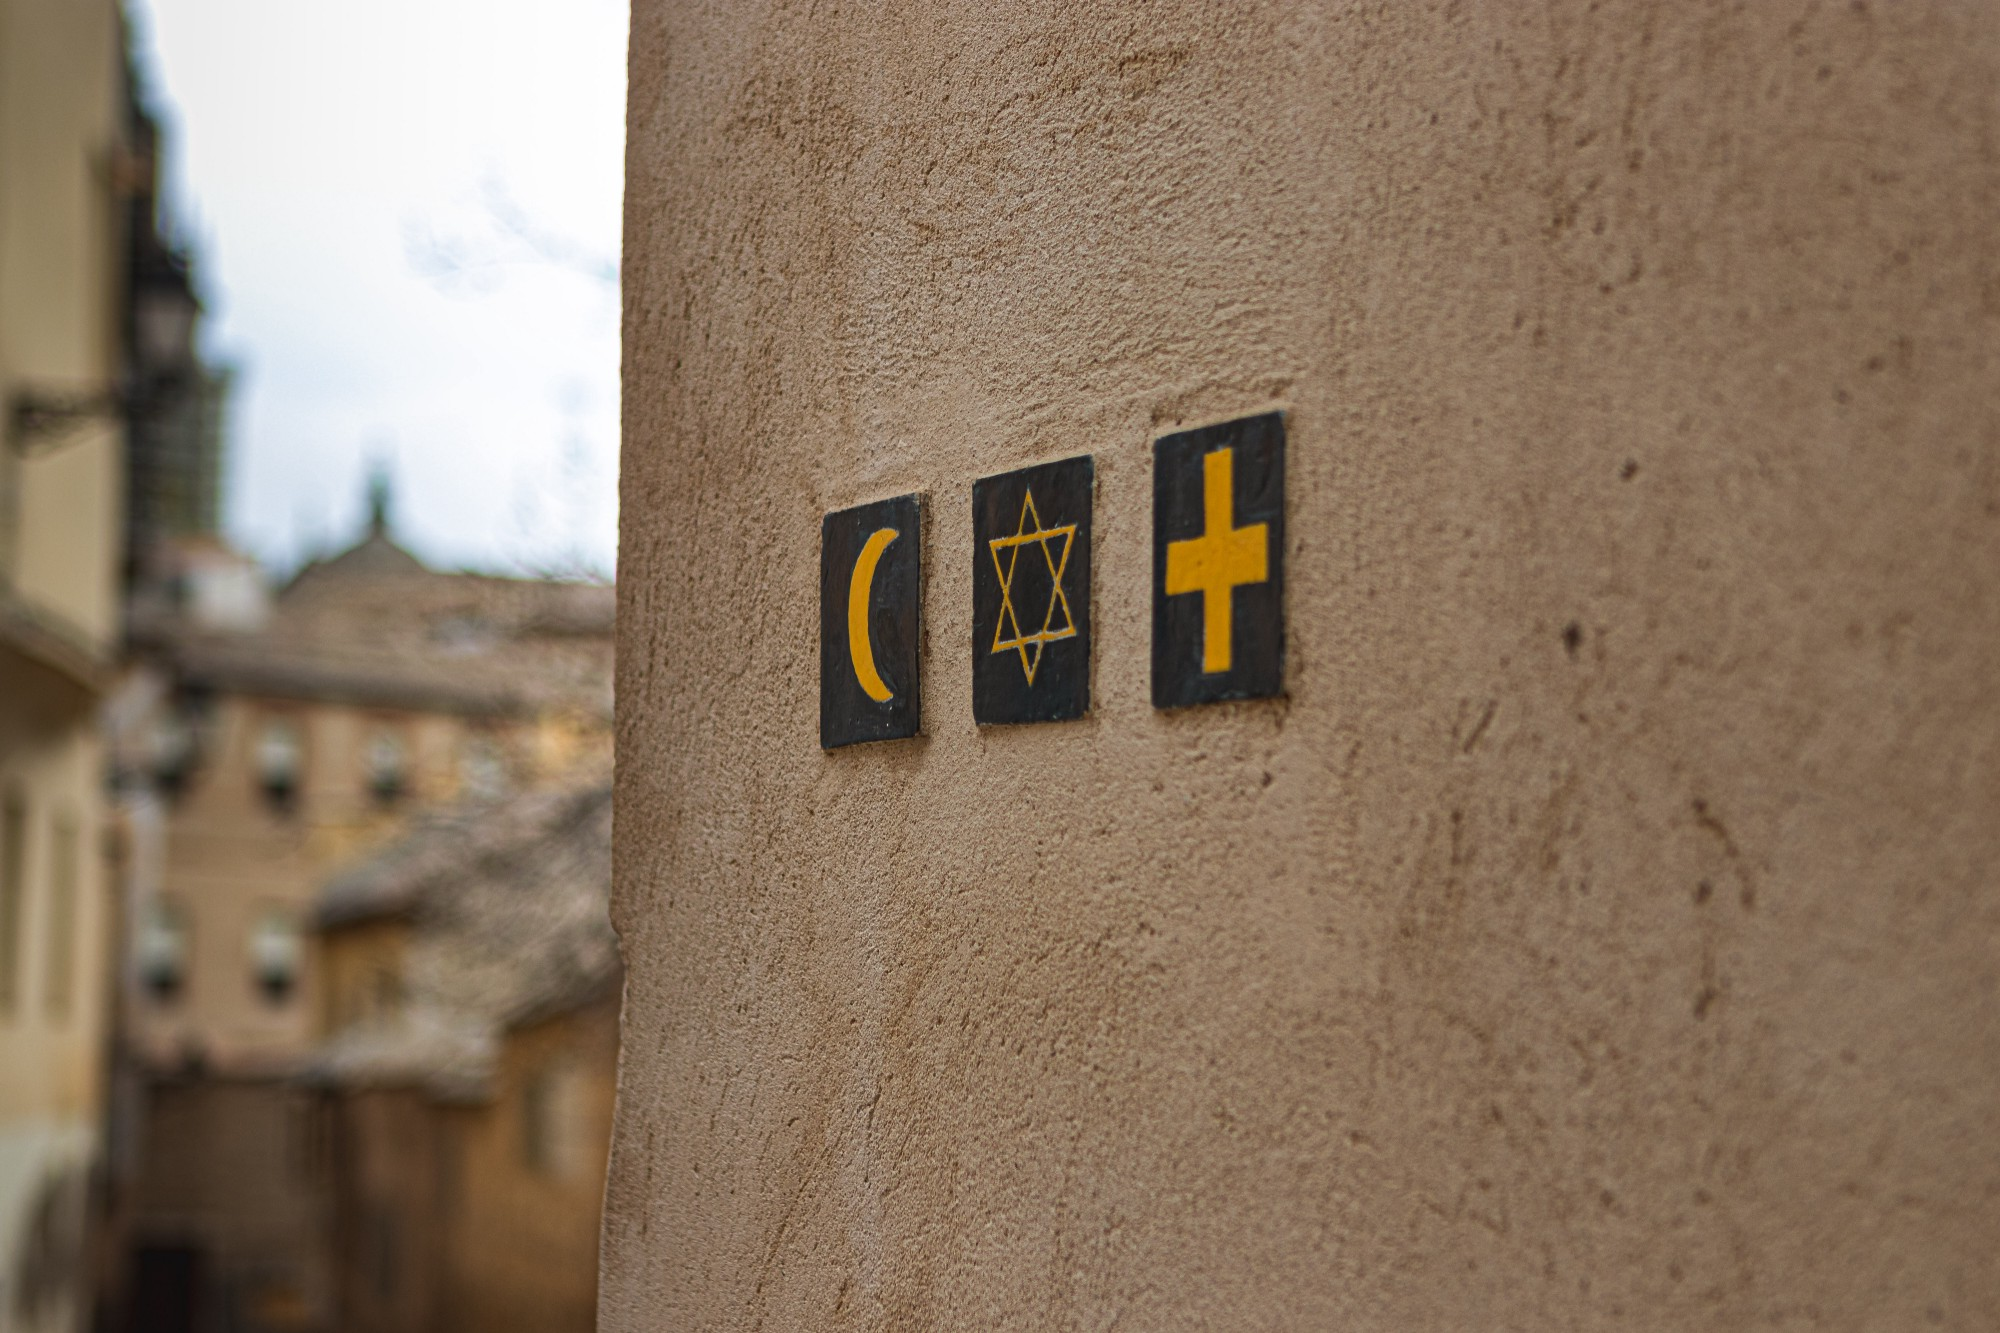 The crescent moon symbol of Islam, the star of David symbol of Judaism, and the cross symbol of Christianity on the side of a brown, mud wall.